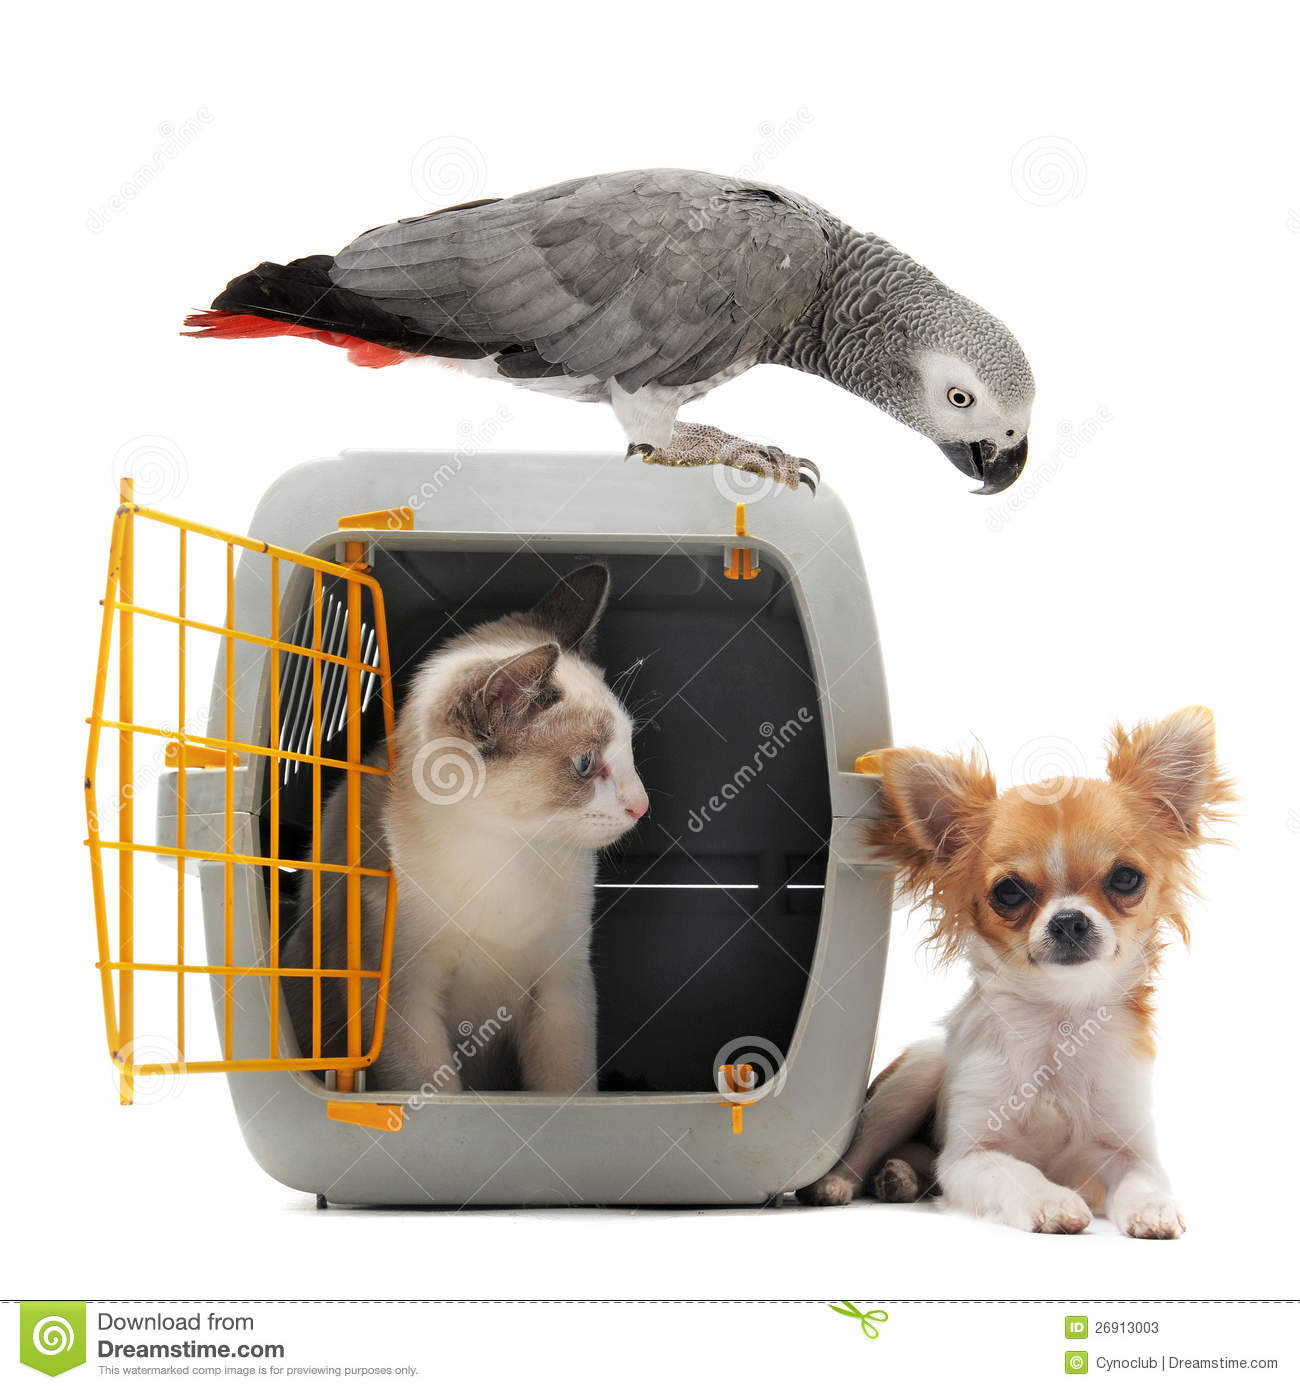 Kitten In Pet Carrier Parrot And Chihuahua Stock Photos  Image 26913003